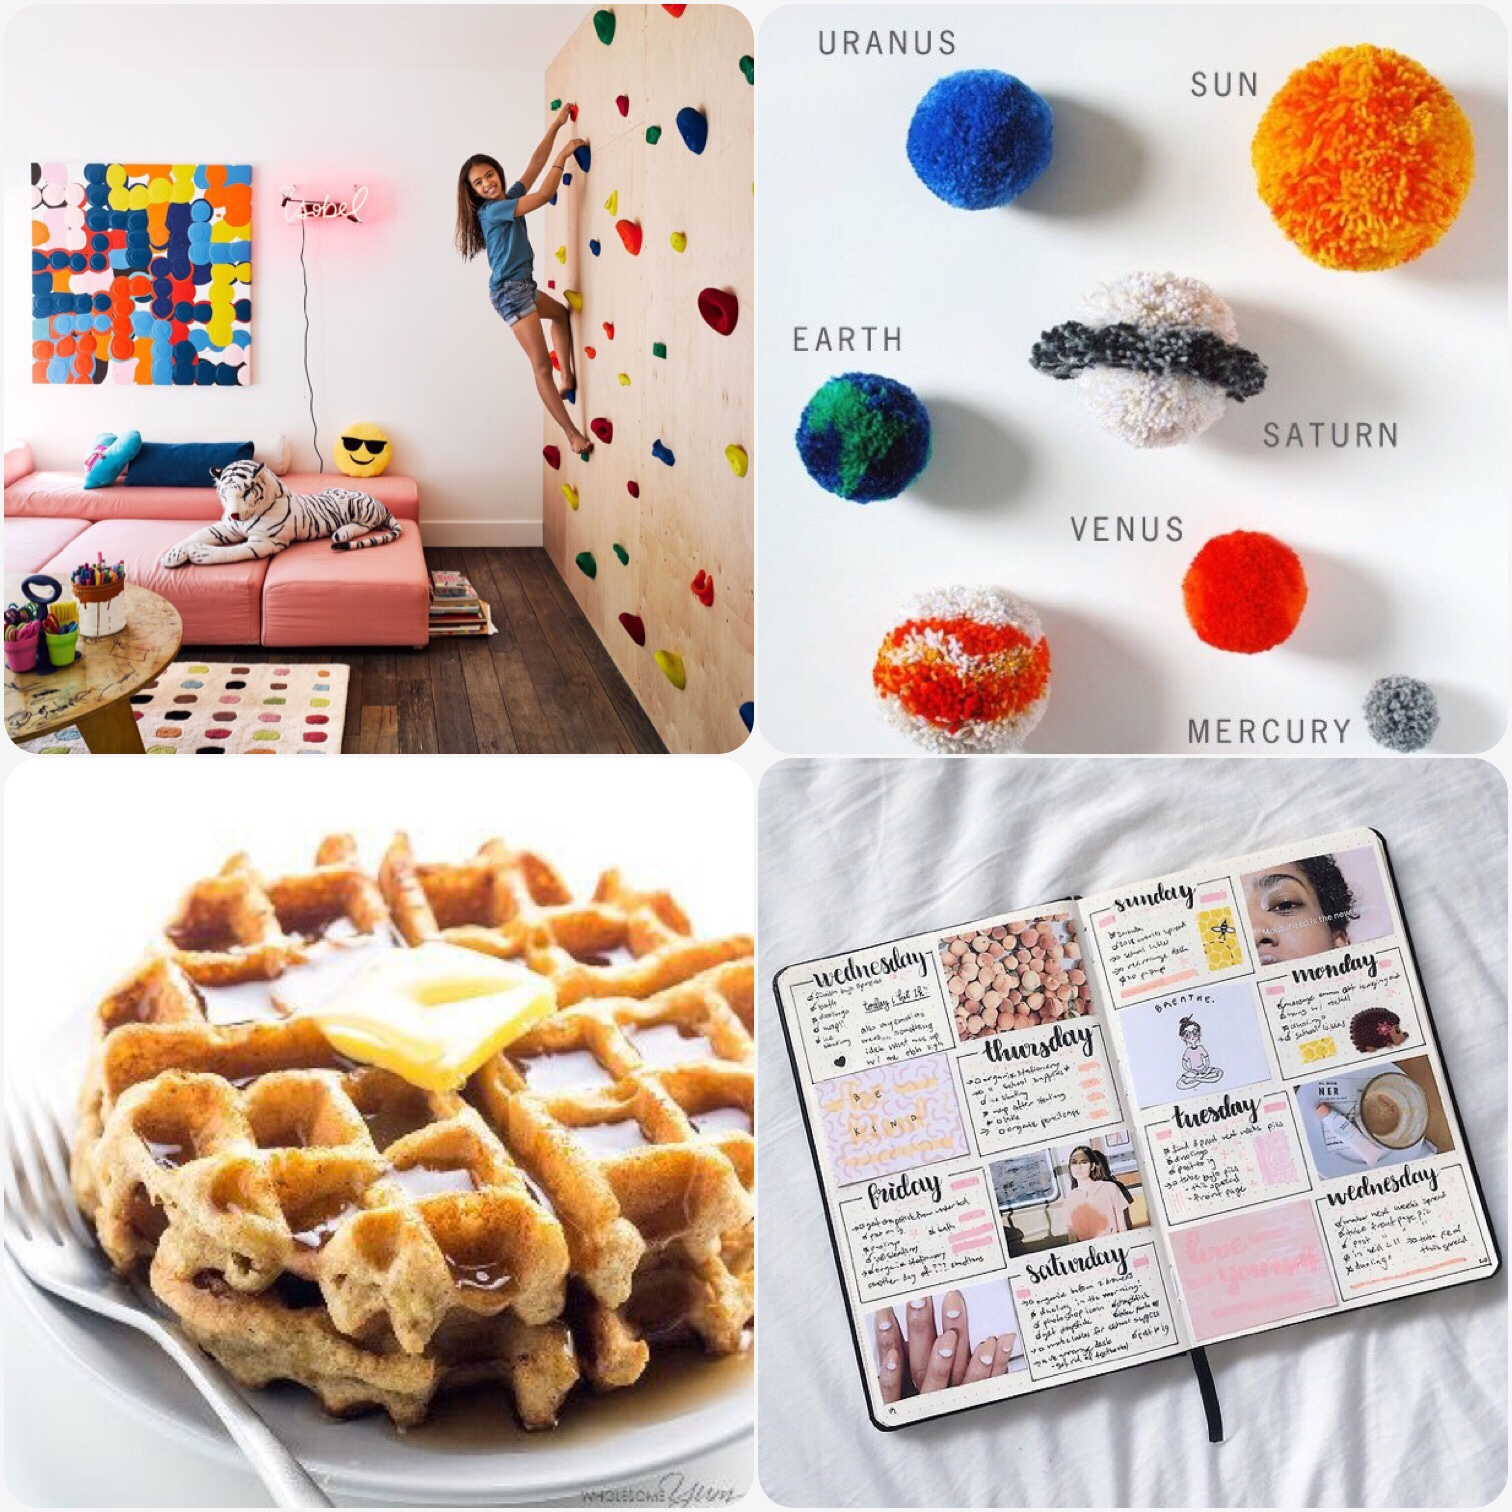 Fab Friday - kids room with climbing wall, Pom Pom solar system craft, almond waffles, bullet journal inspiration